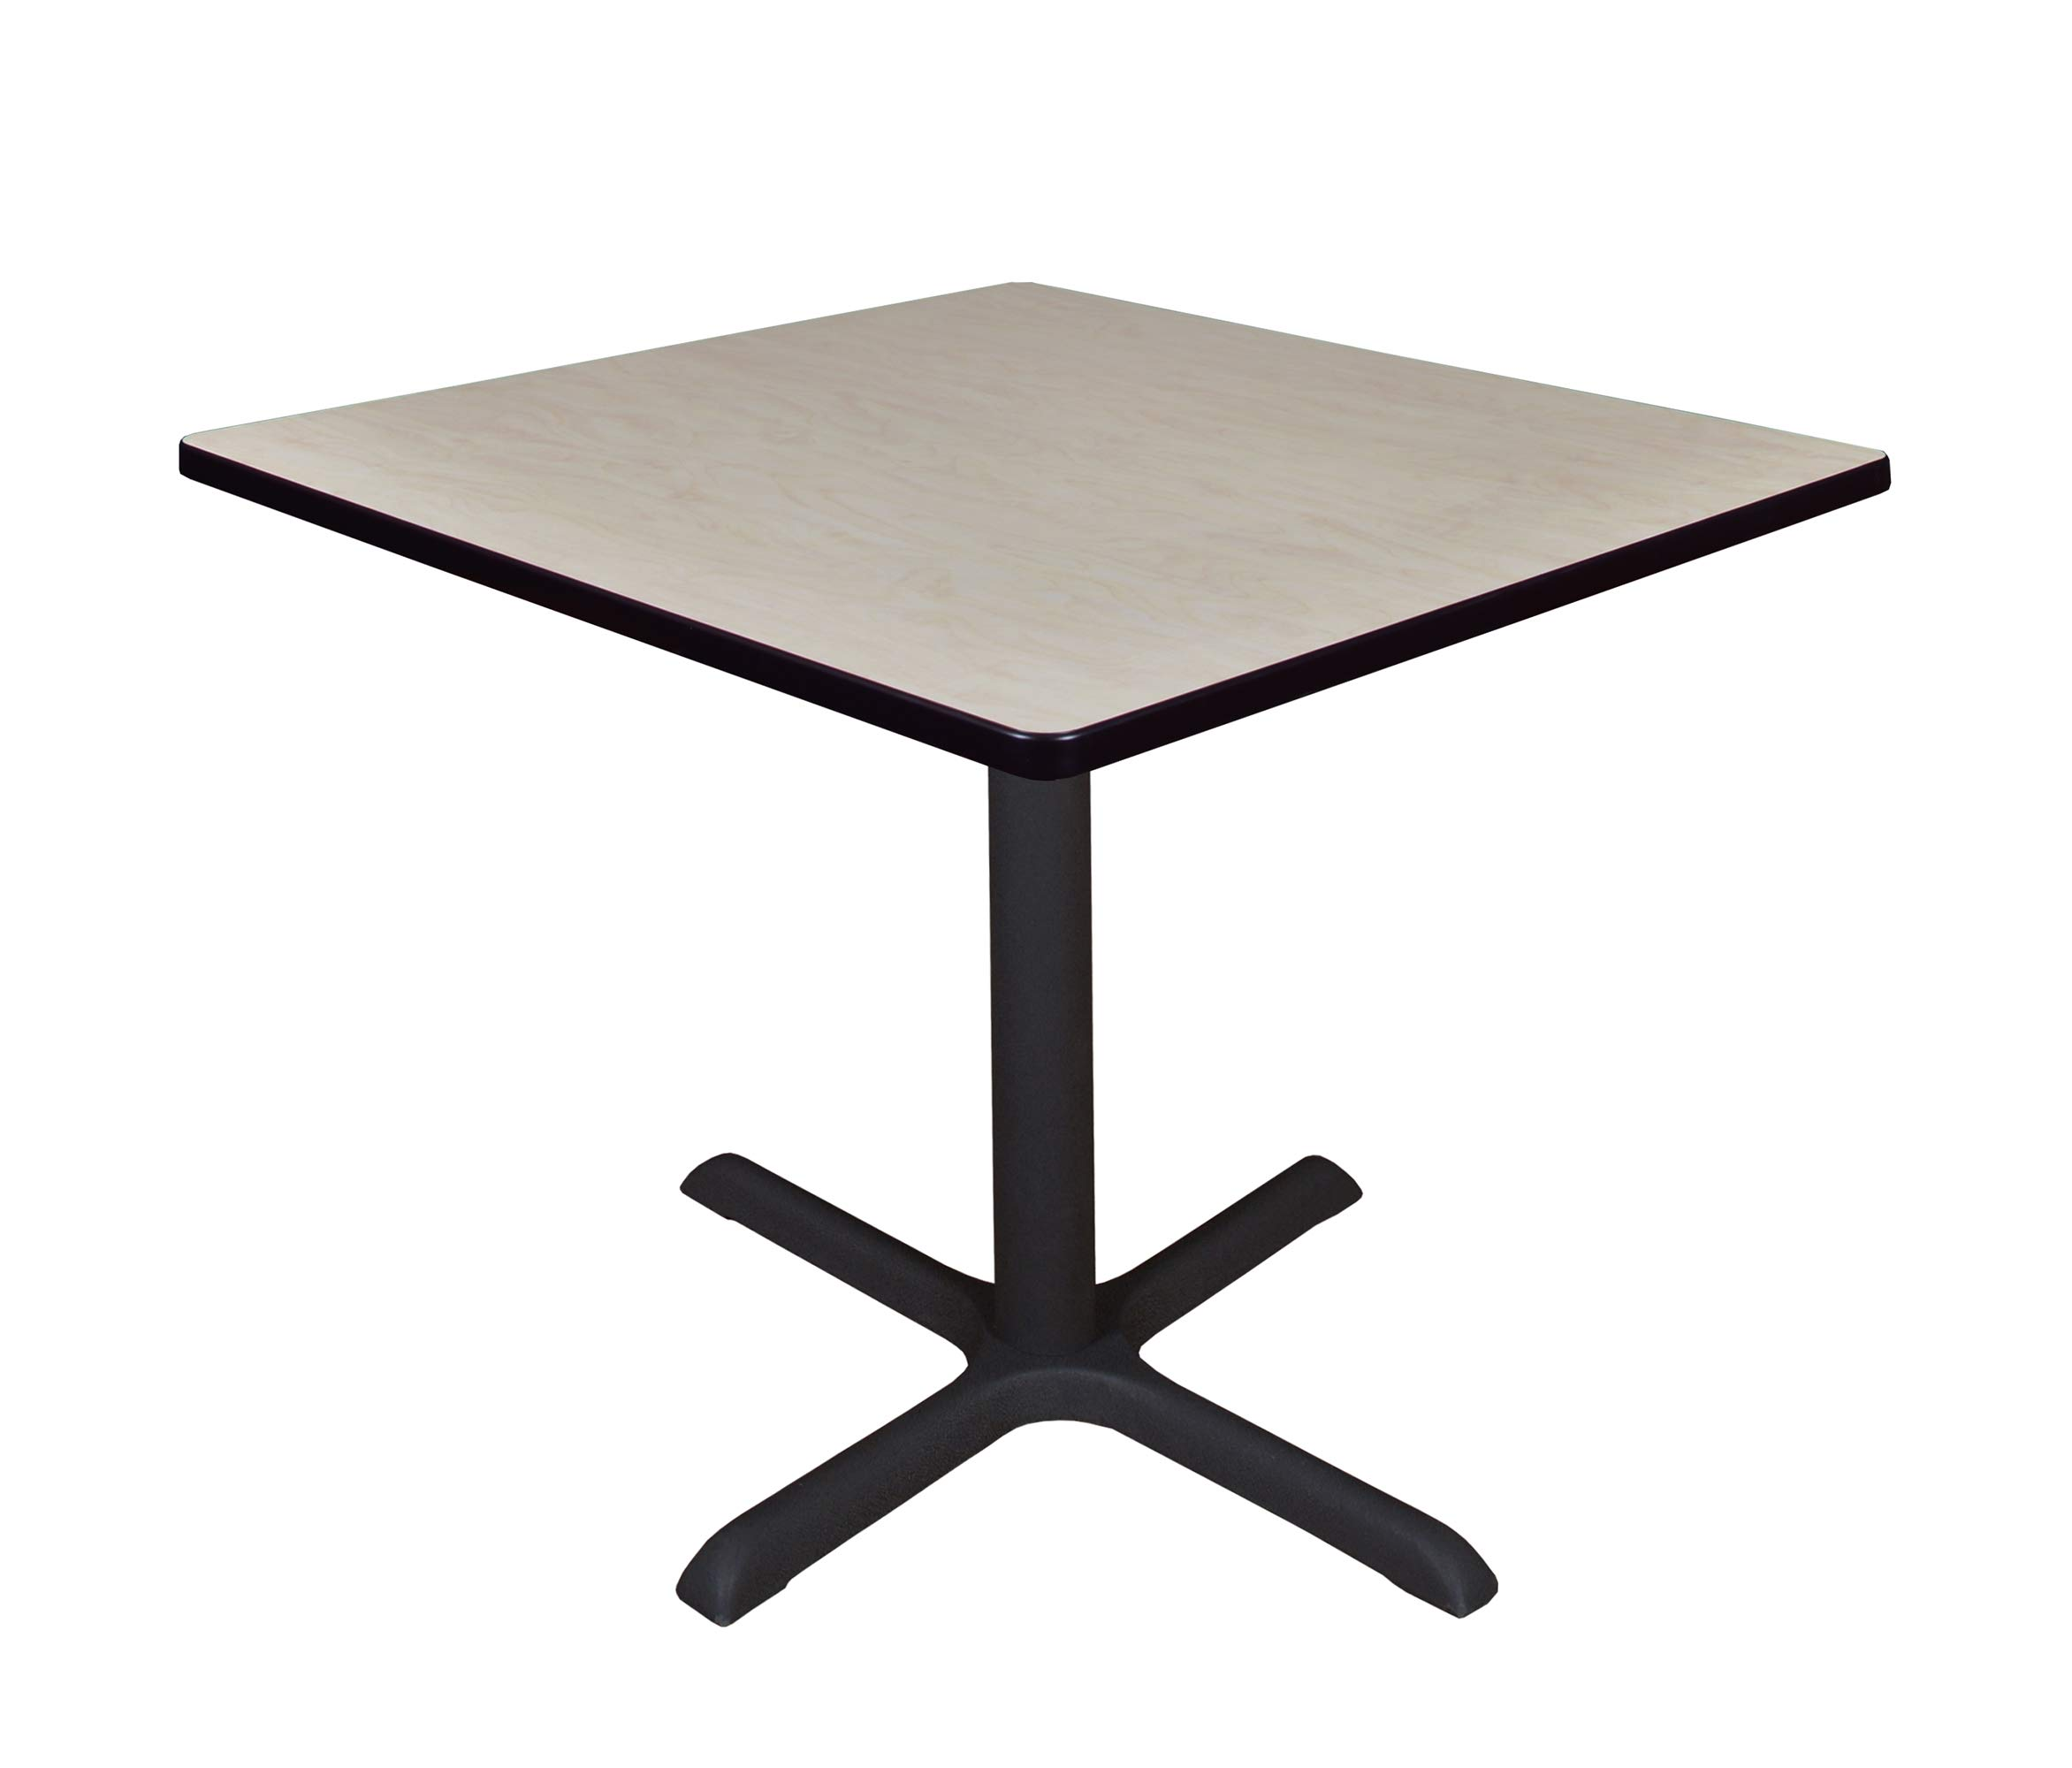 Regency A-TB3636LM Cali Square Breakroom Table, 36'', Light Maple by Regency